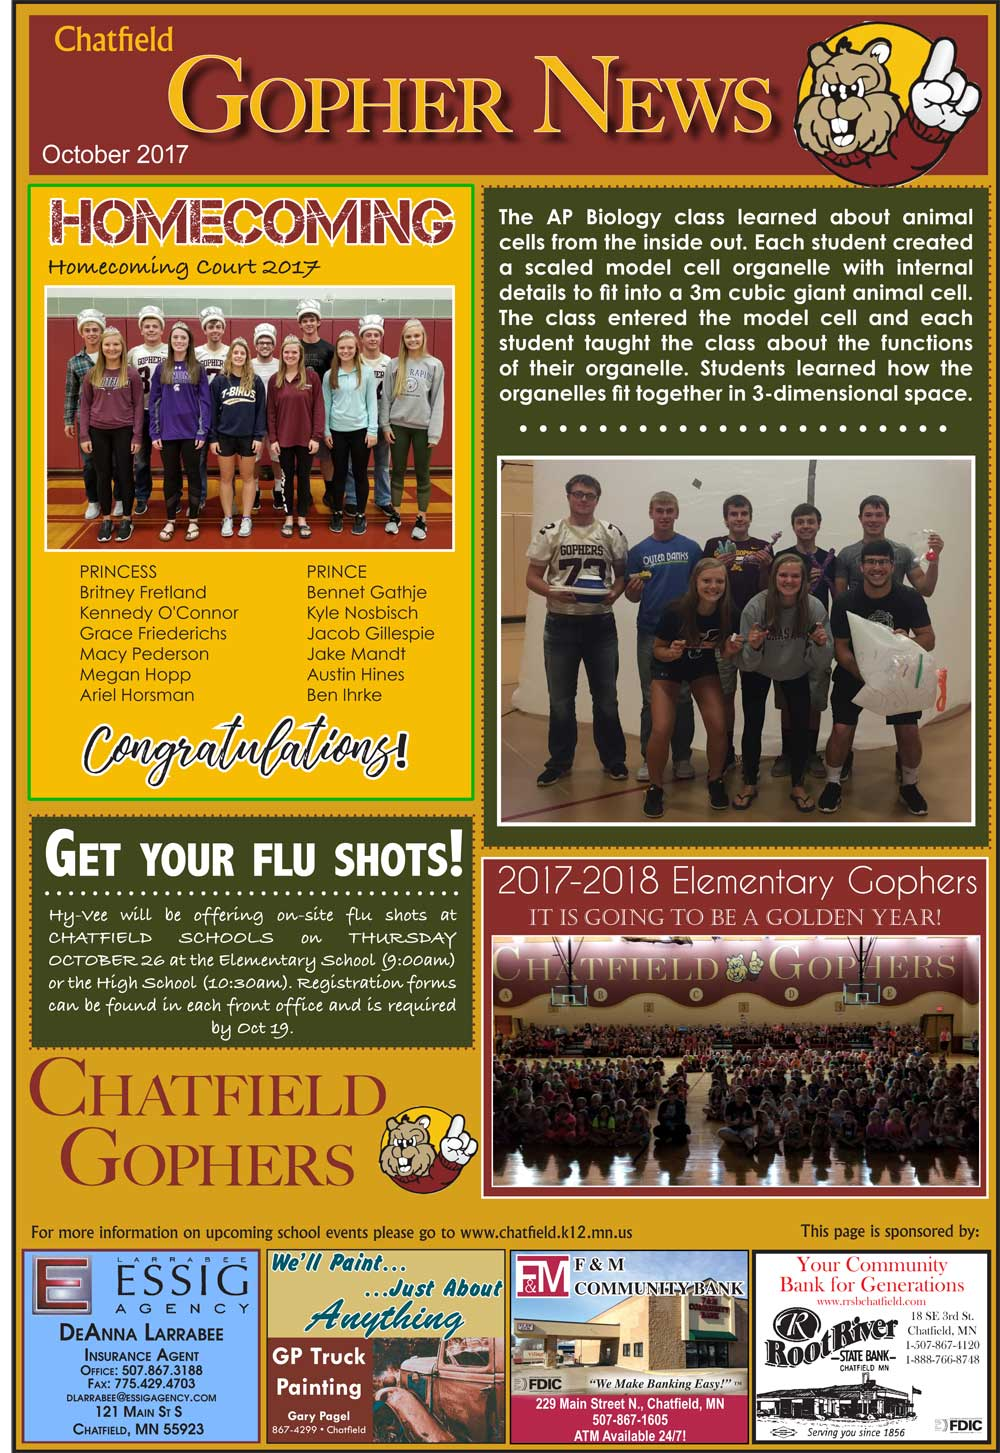 Fillmore County Journal - Chatfield Gopher News